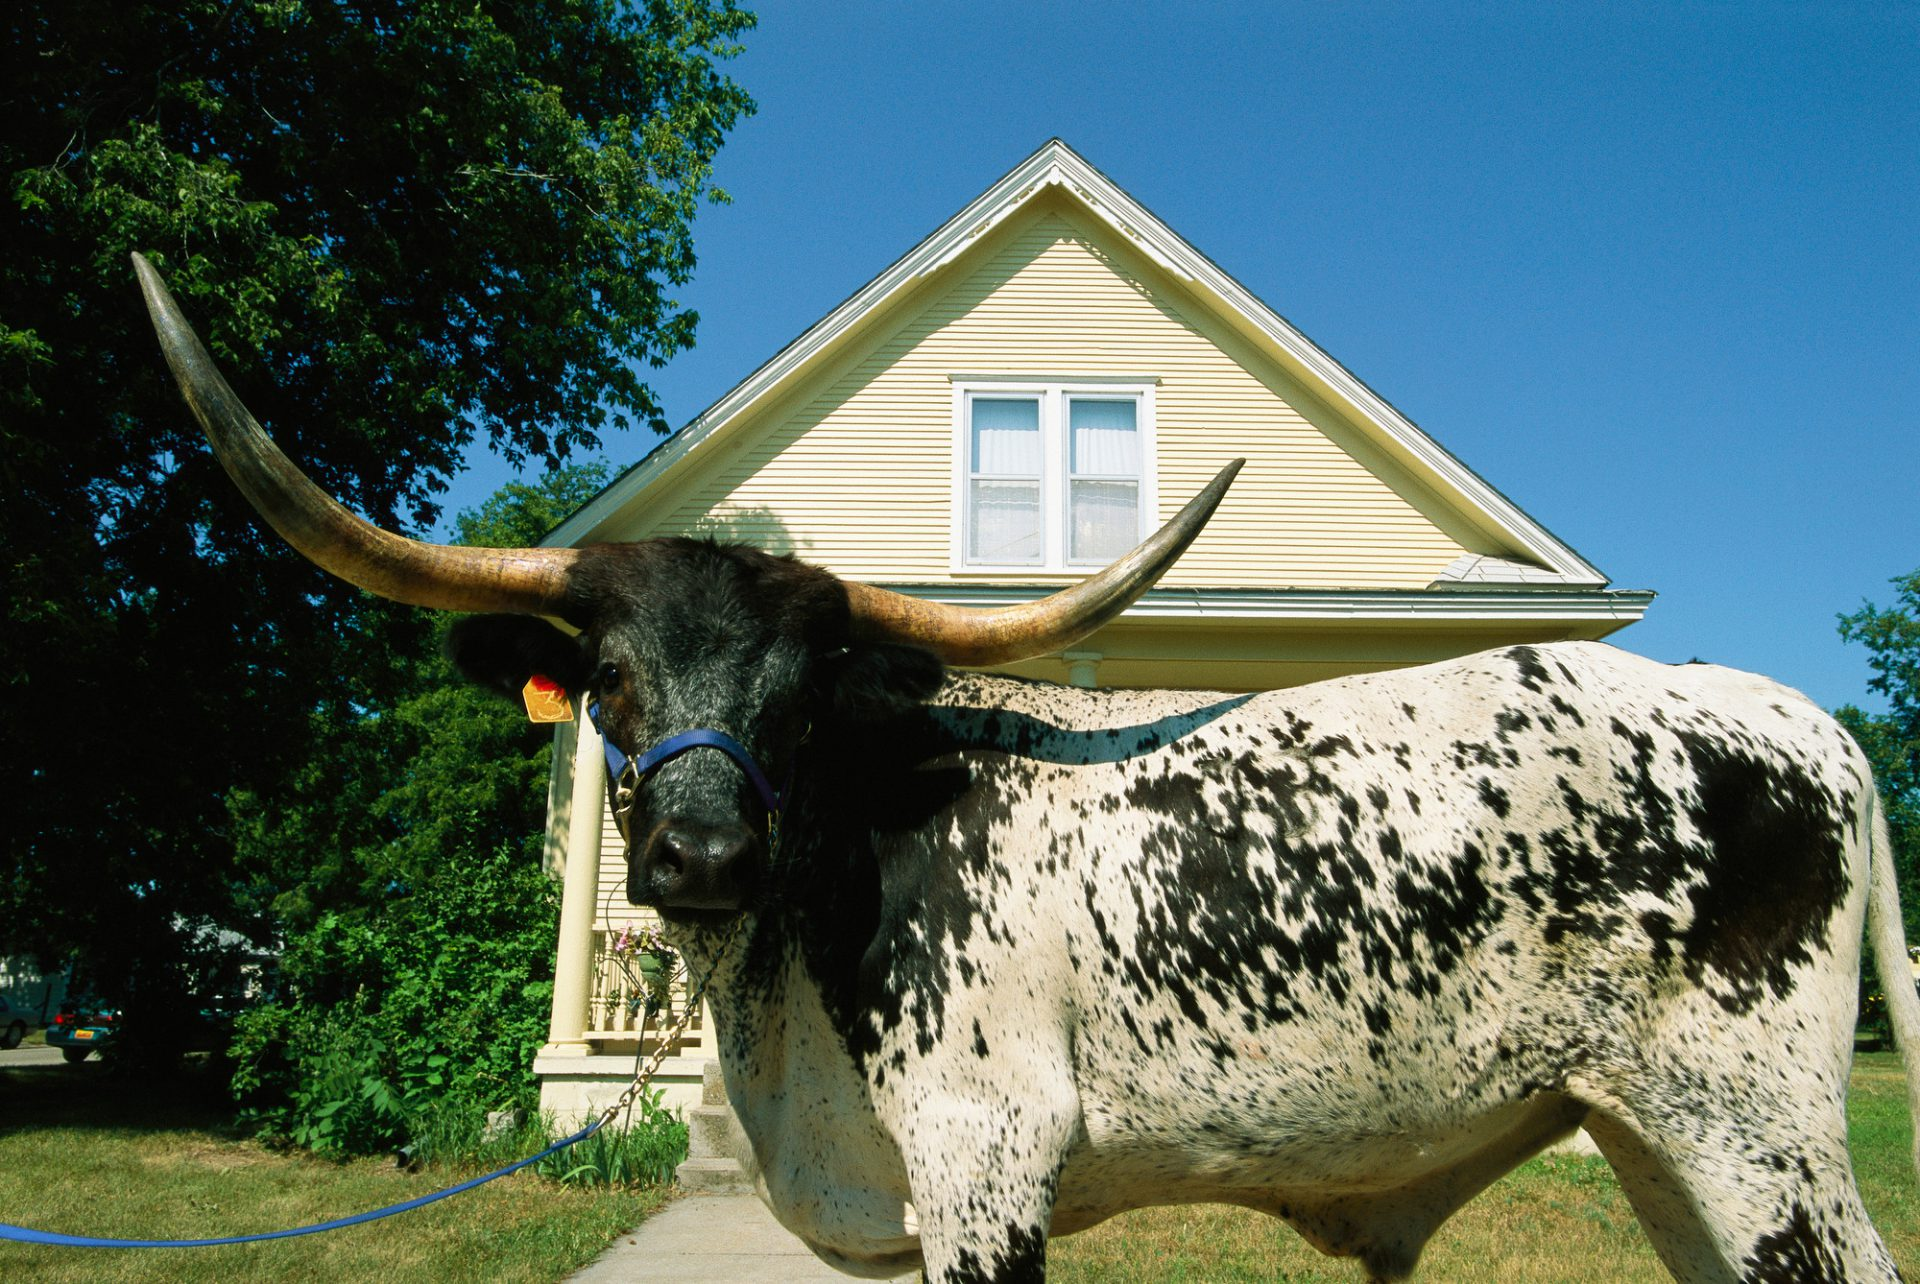 Photo: A longhorn bull poses in front of a house with yellow siding.